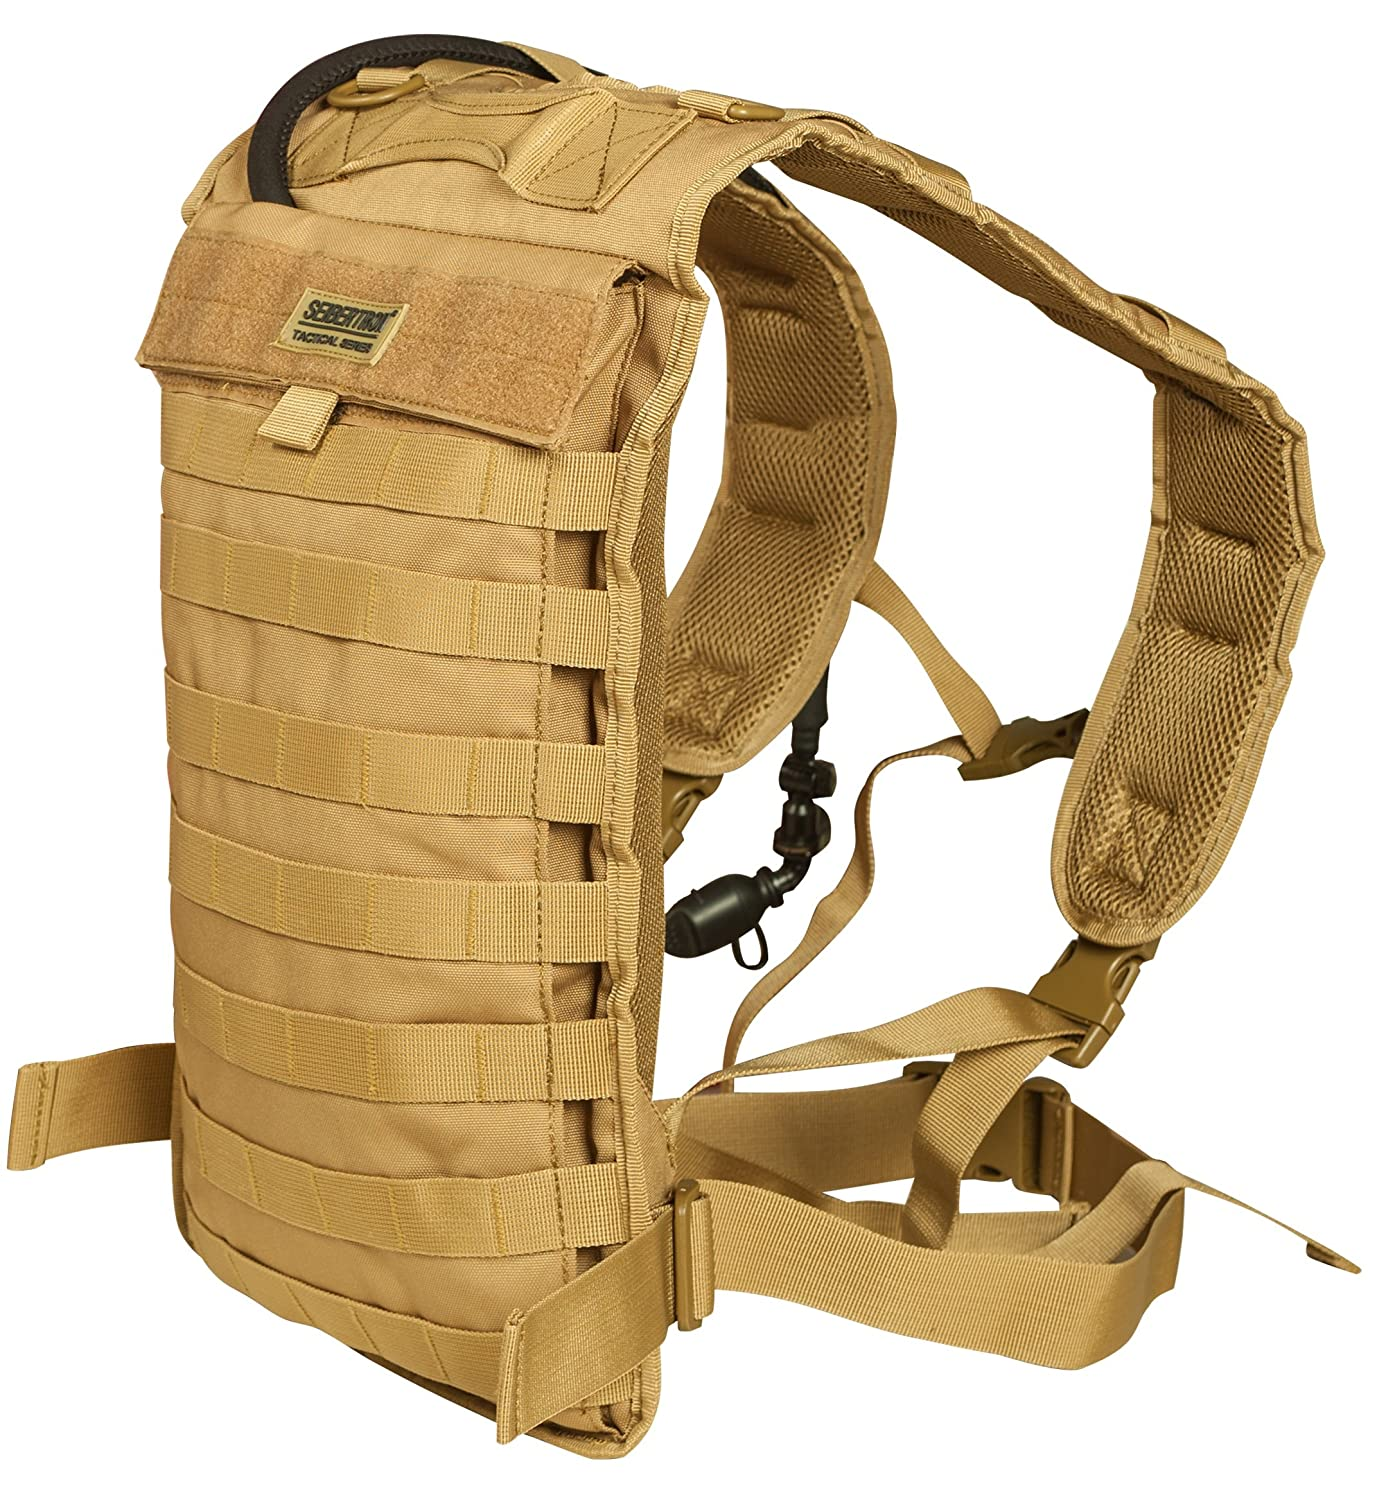 Seibertron Tactical Molle Hydration Carrier Pack Backpack Great for Outdoor Sports of Running Hiking Camping Cycling Motorcycle Fit for Seibertron 2L or 2.5L water bladder(not included) Ltd.